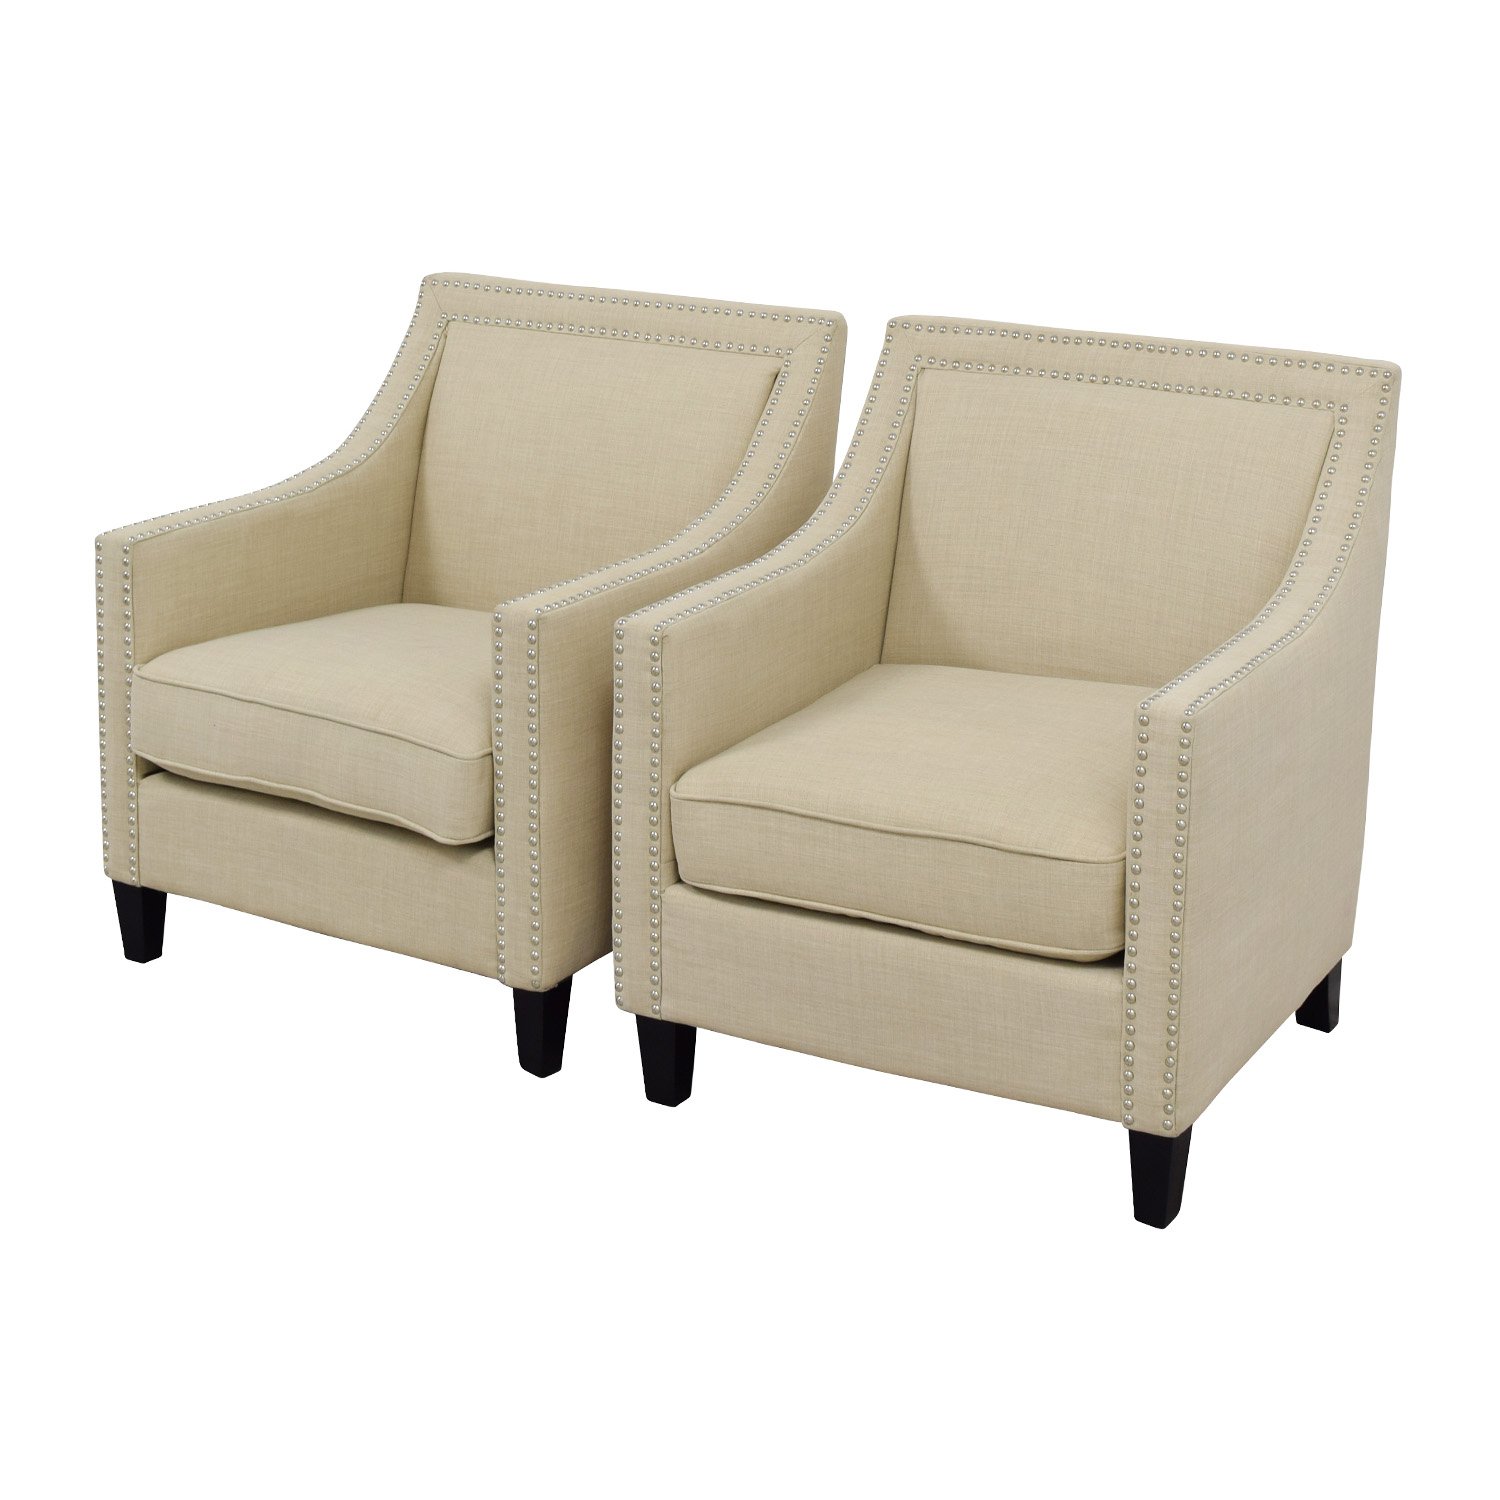 Off studded beige sofa arm chairs